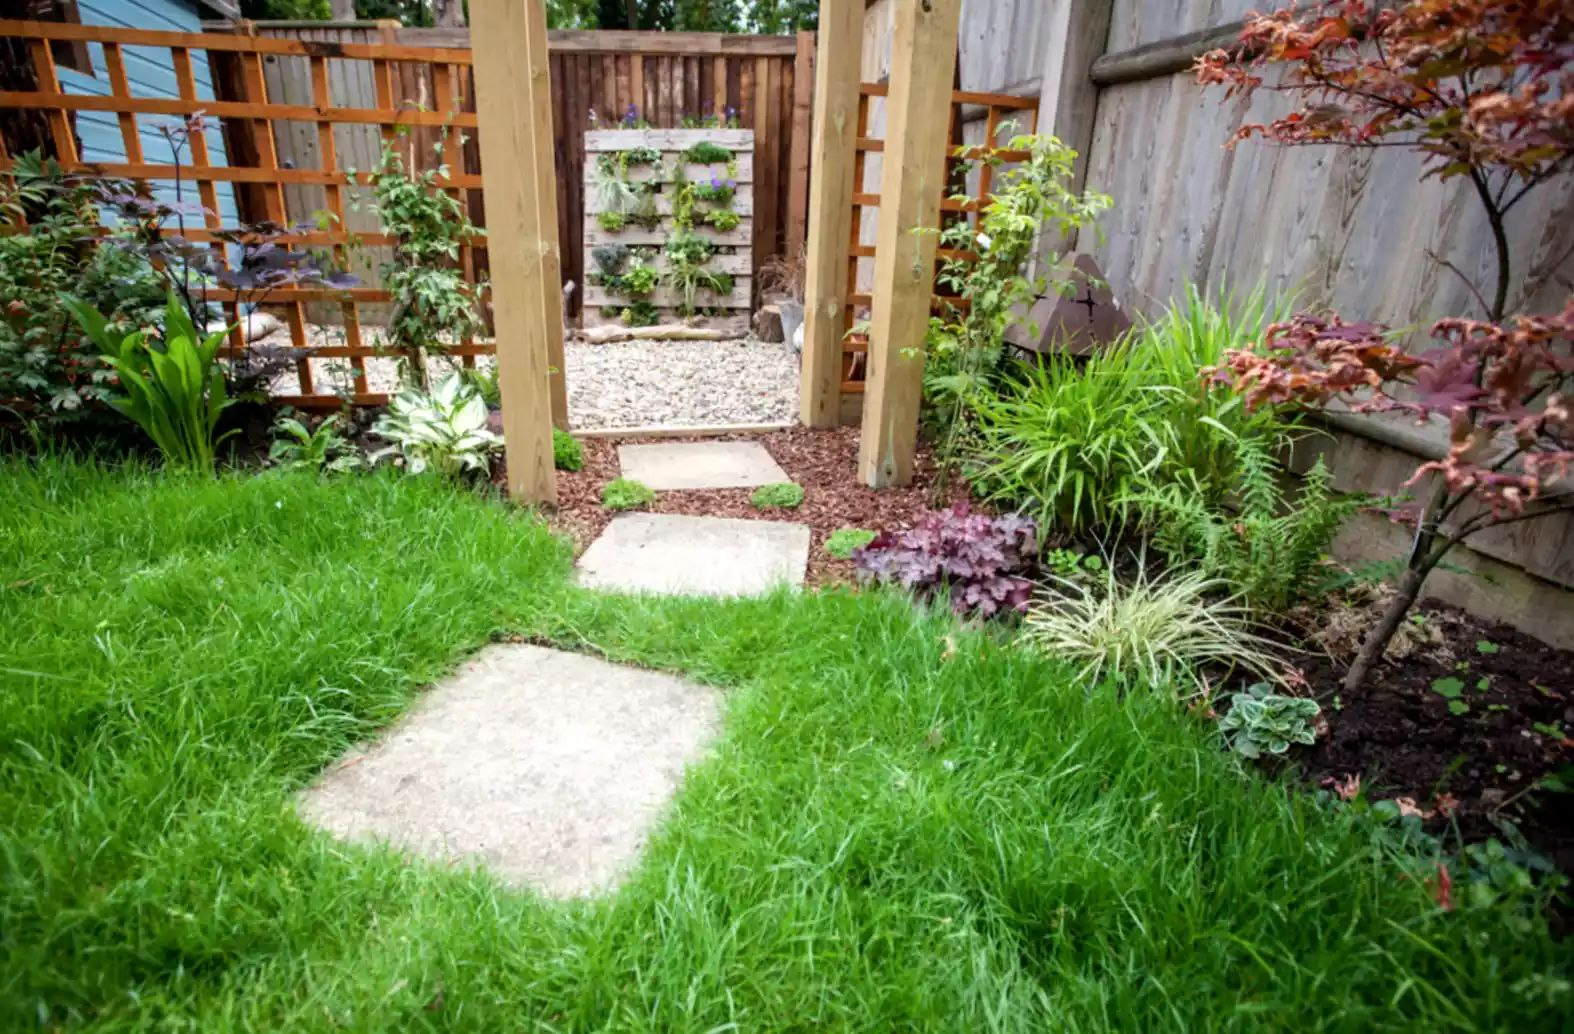 Lush Lawn -   Beautiful Low Maintenance Front Yard Garden and Landscaping Ideas